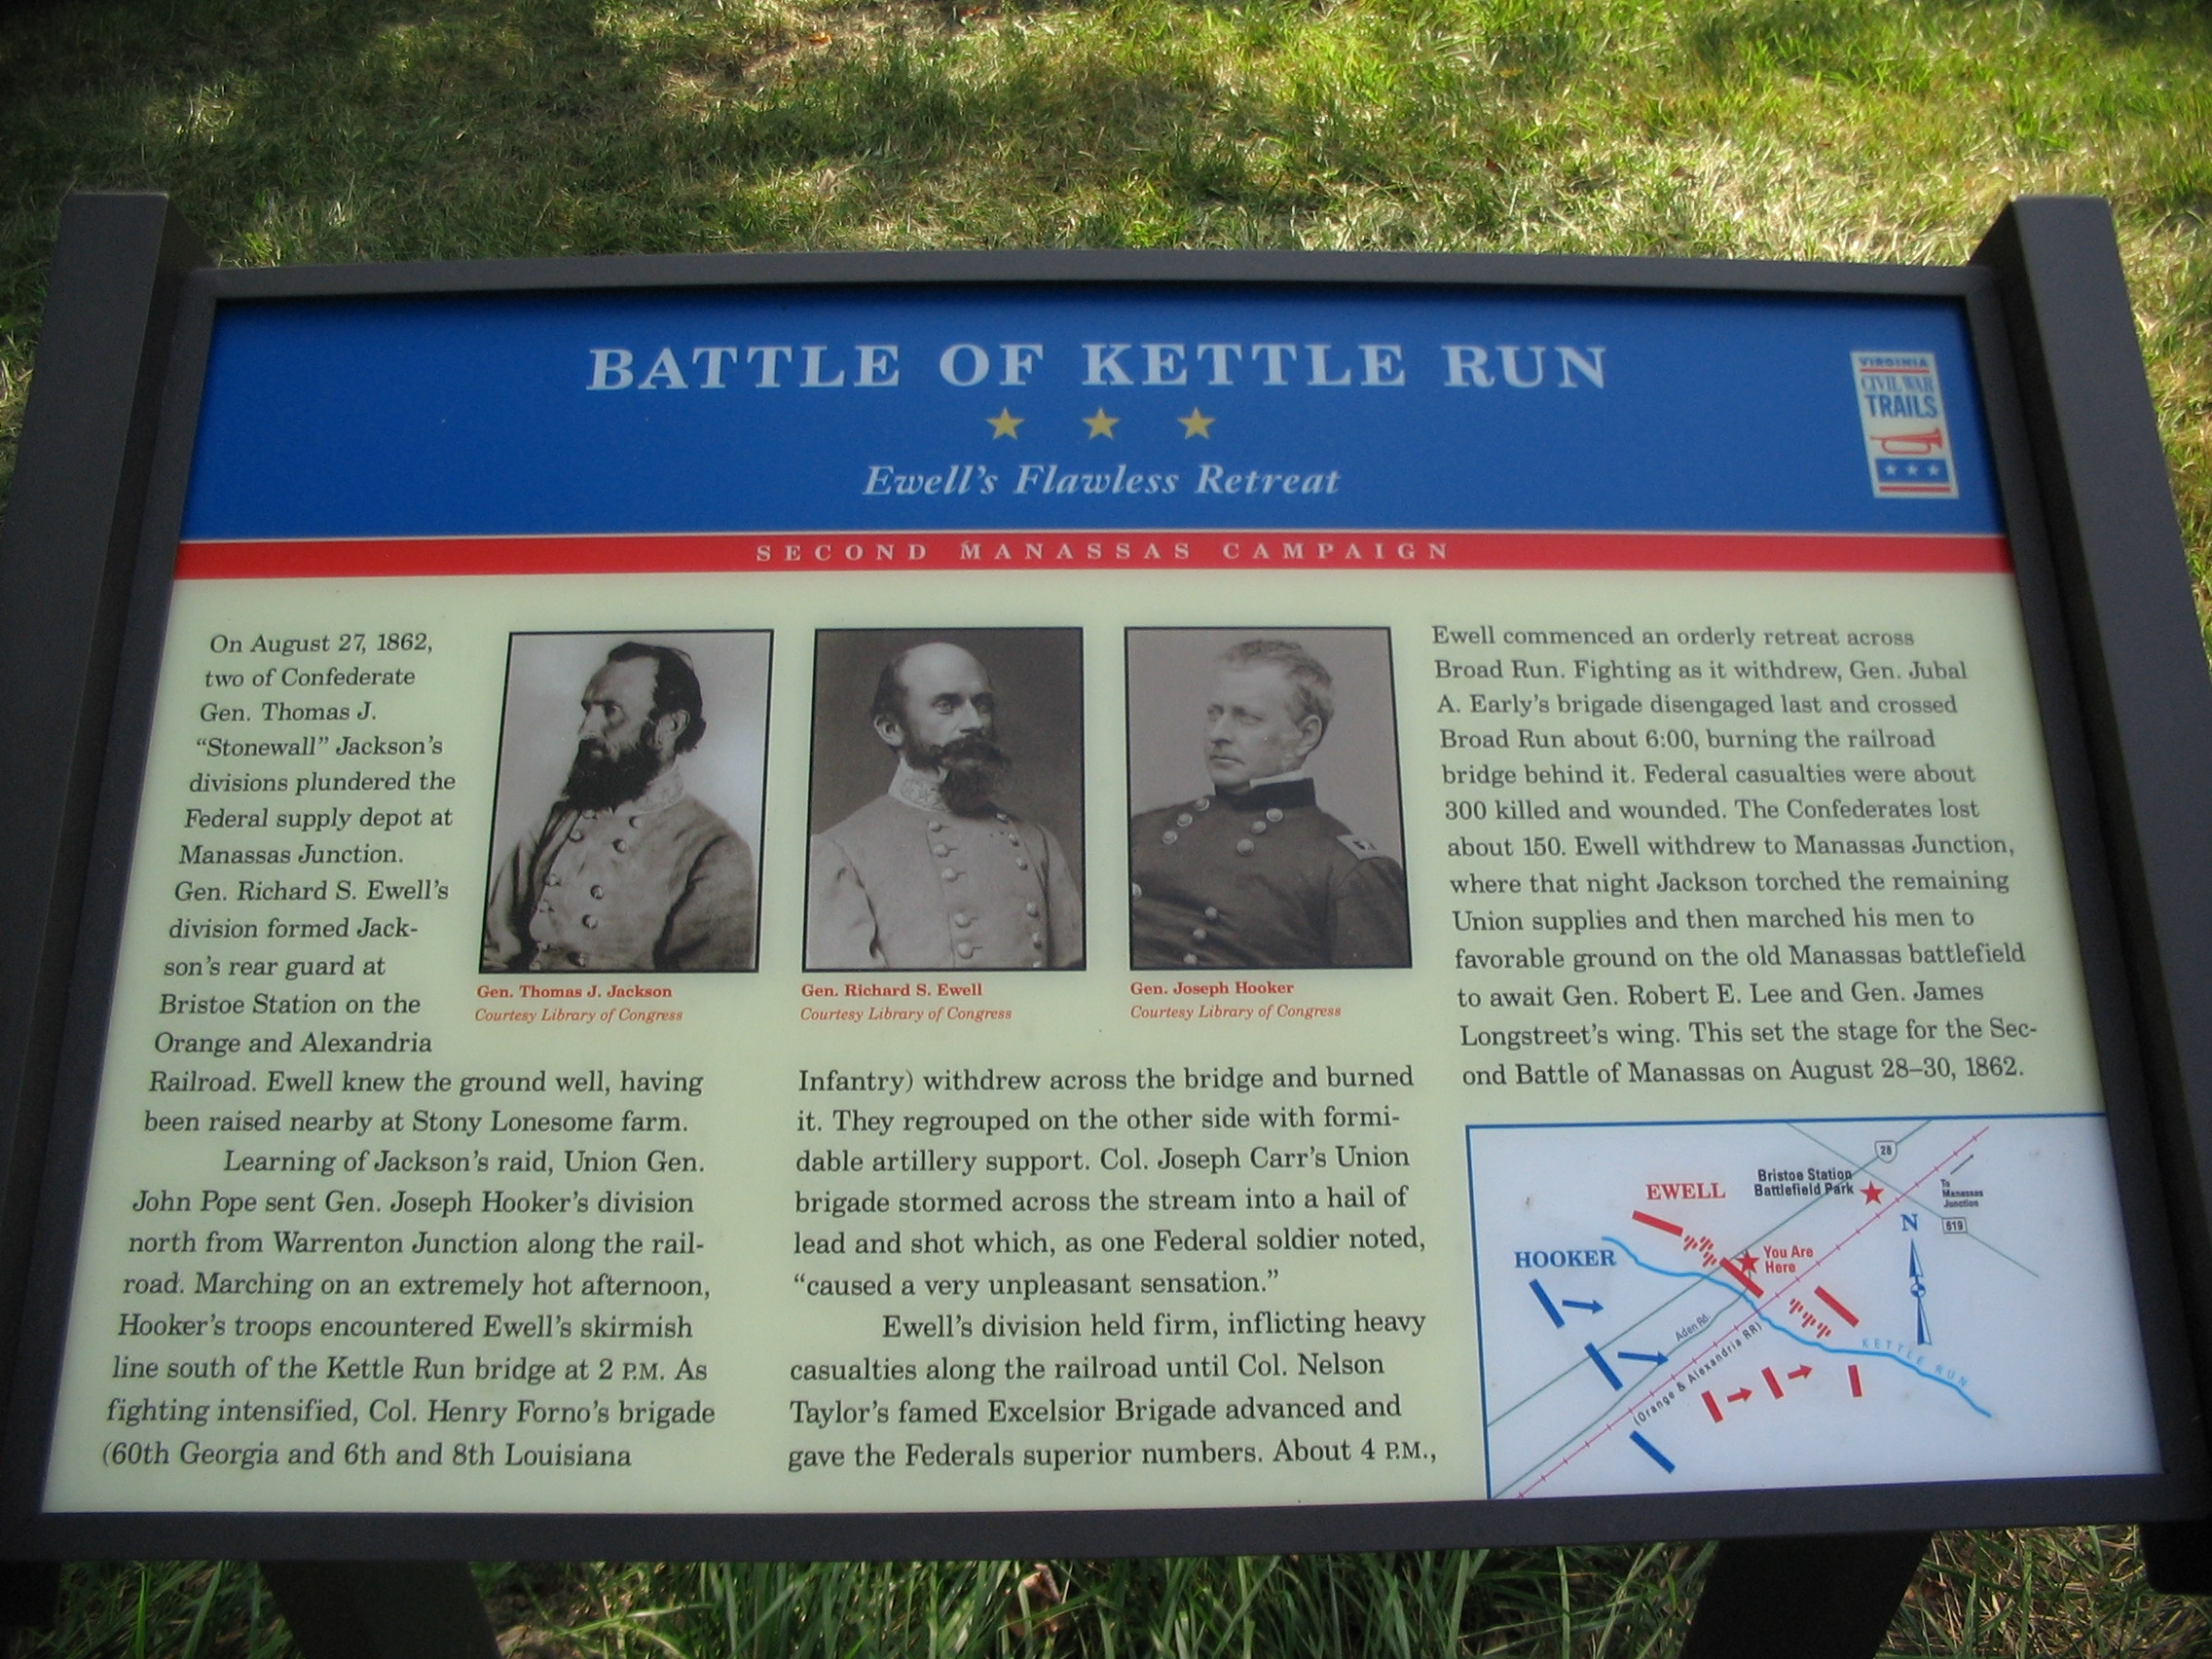 Battle of Kettle Run Marker